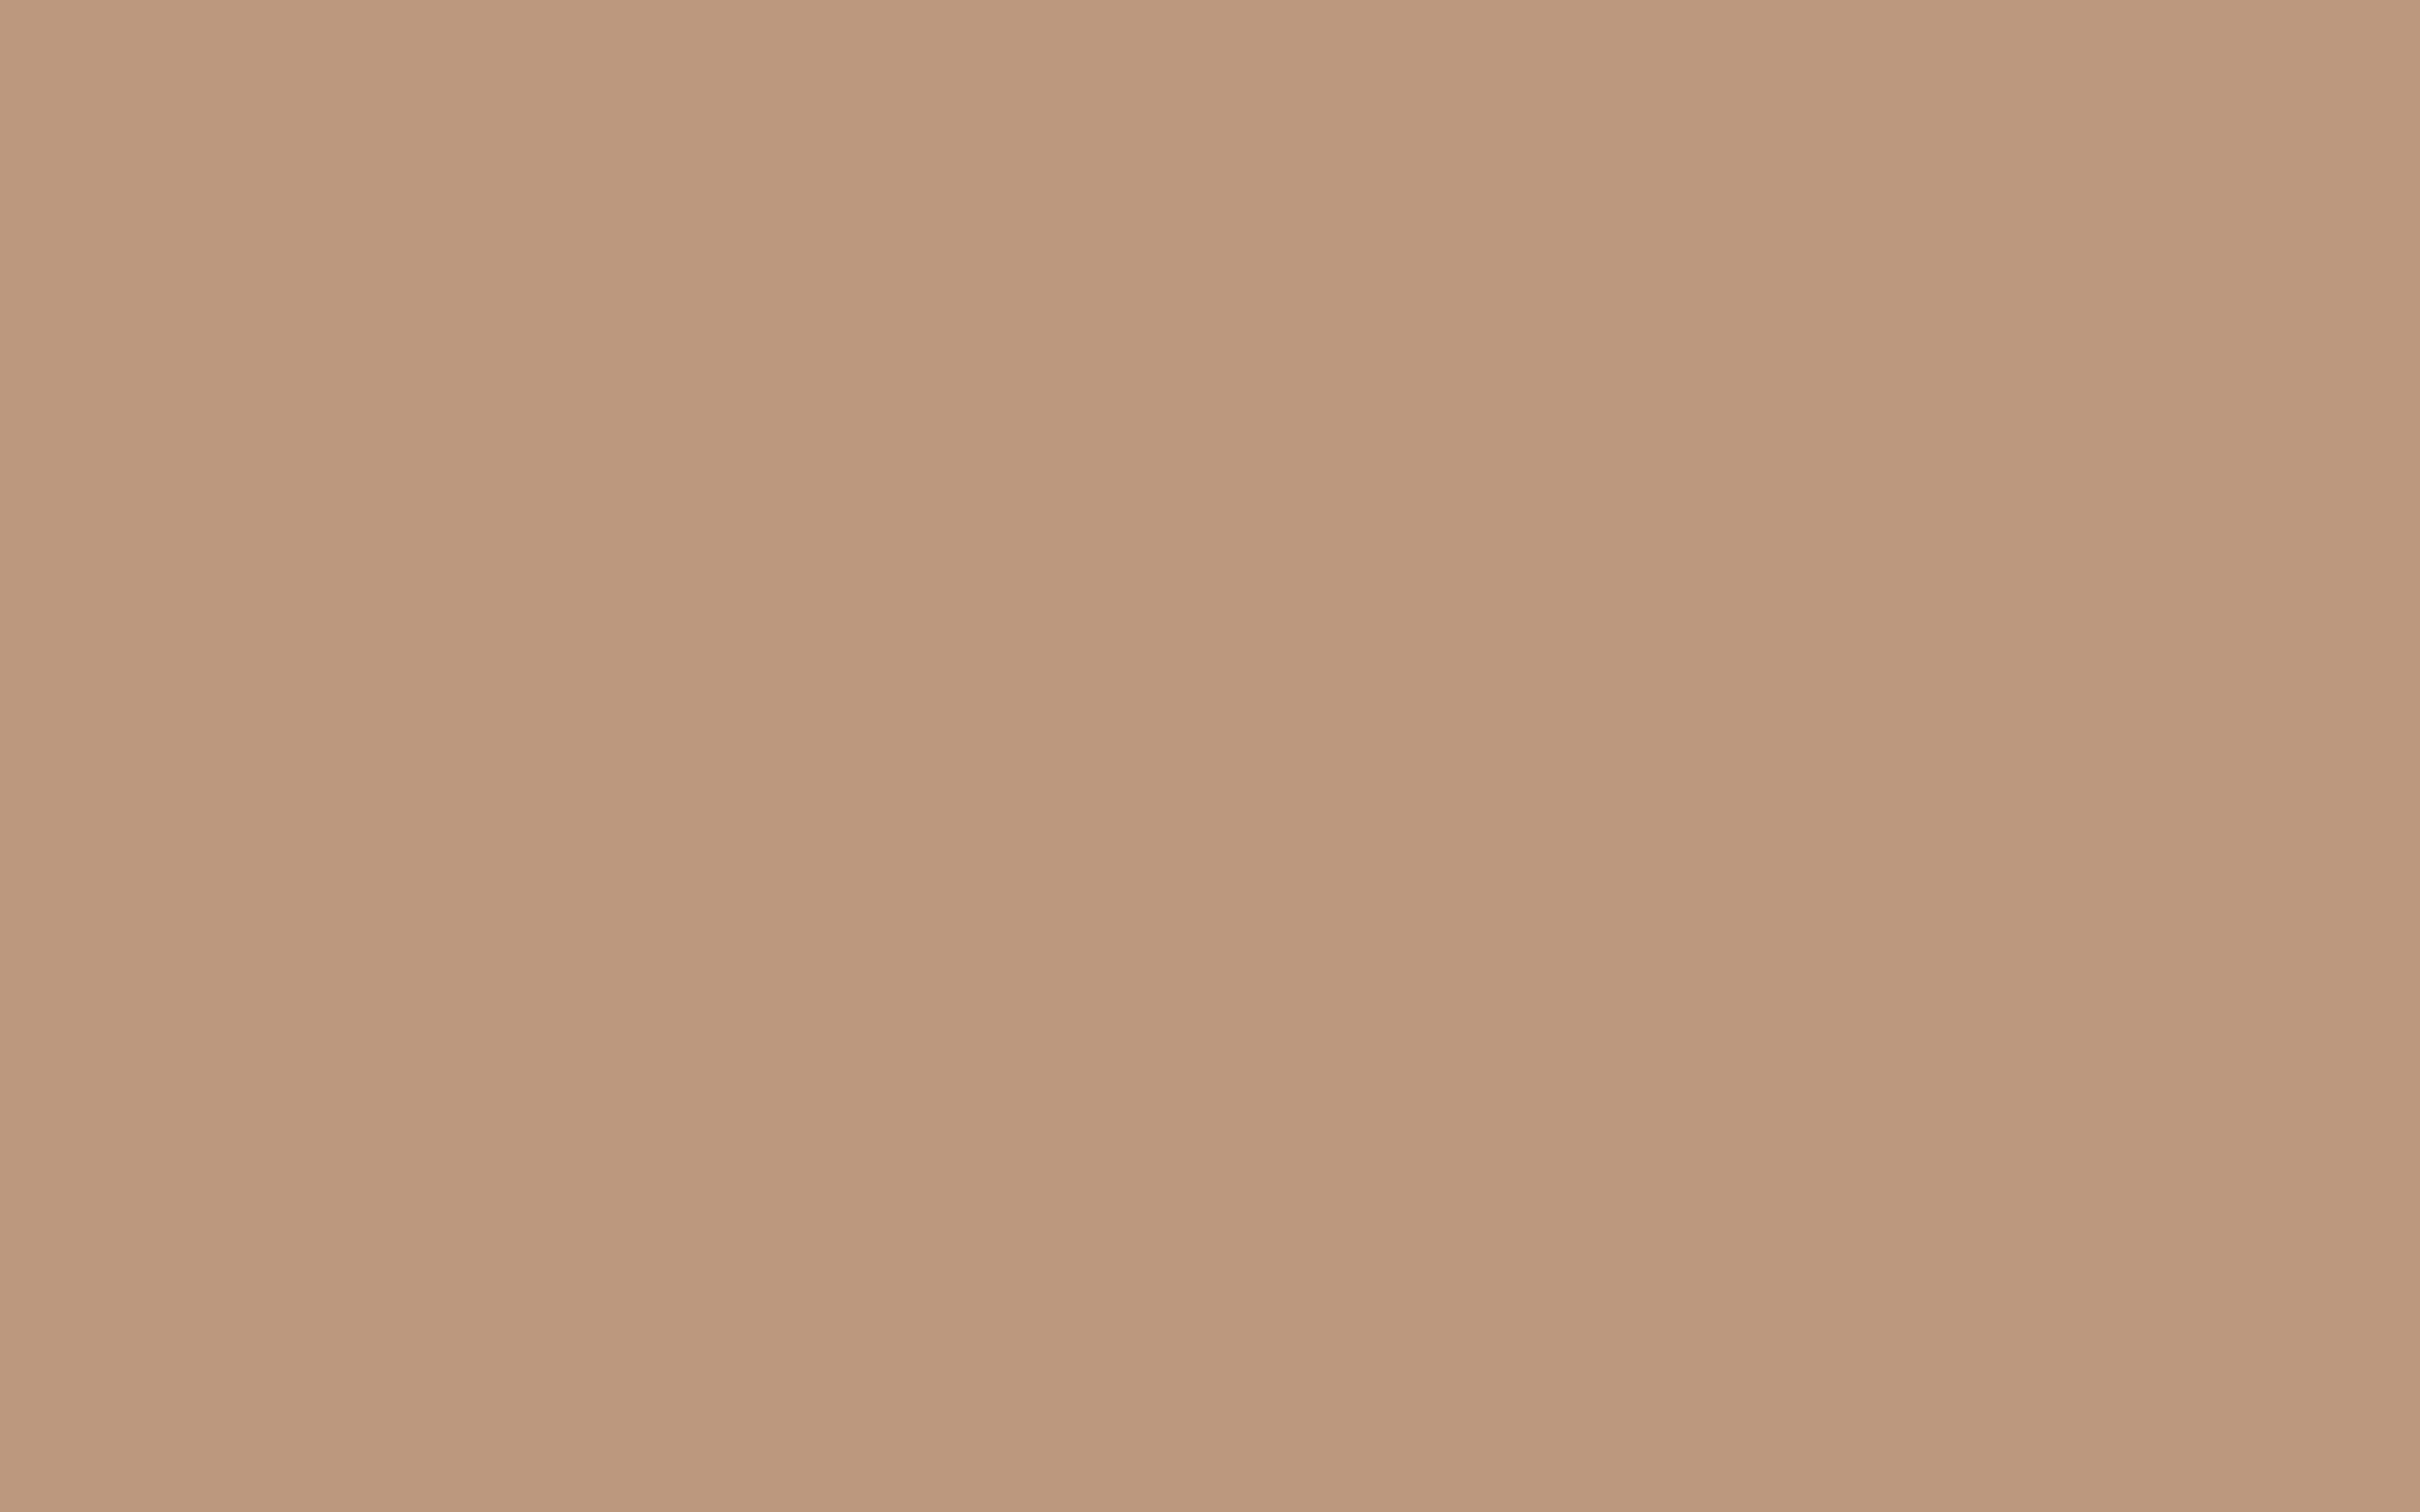 2560x1600 Pale Taupe Solid Color Background